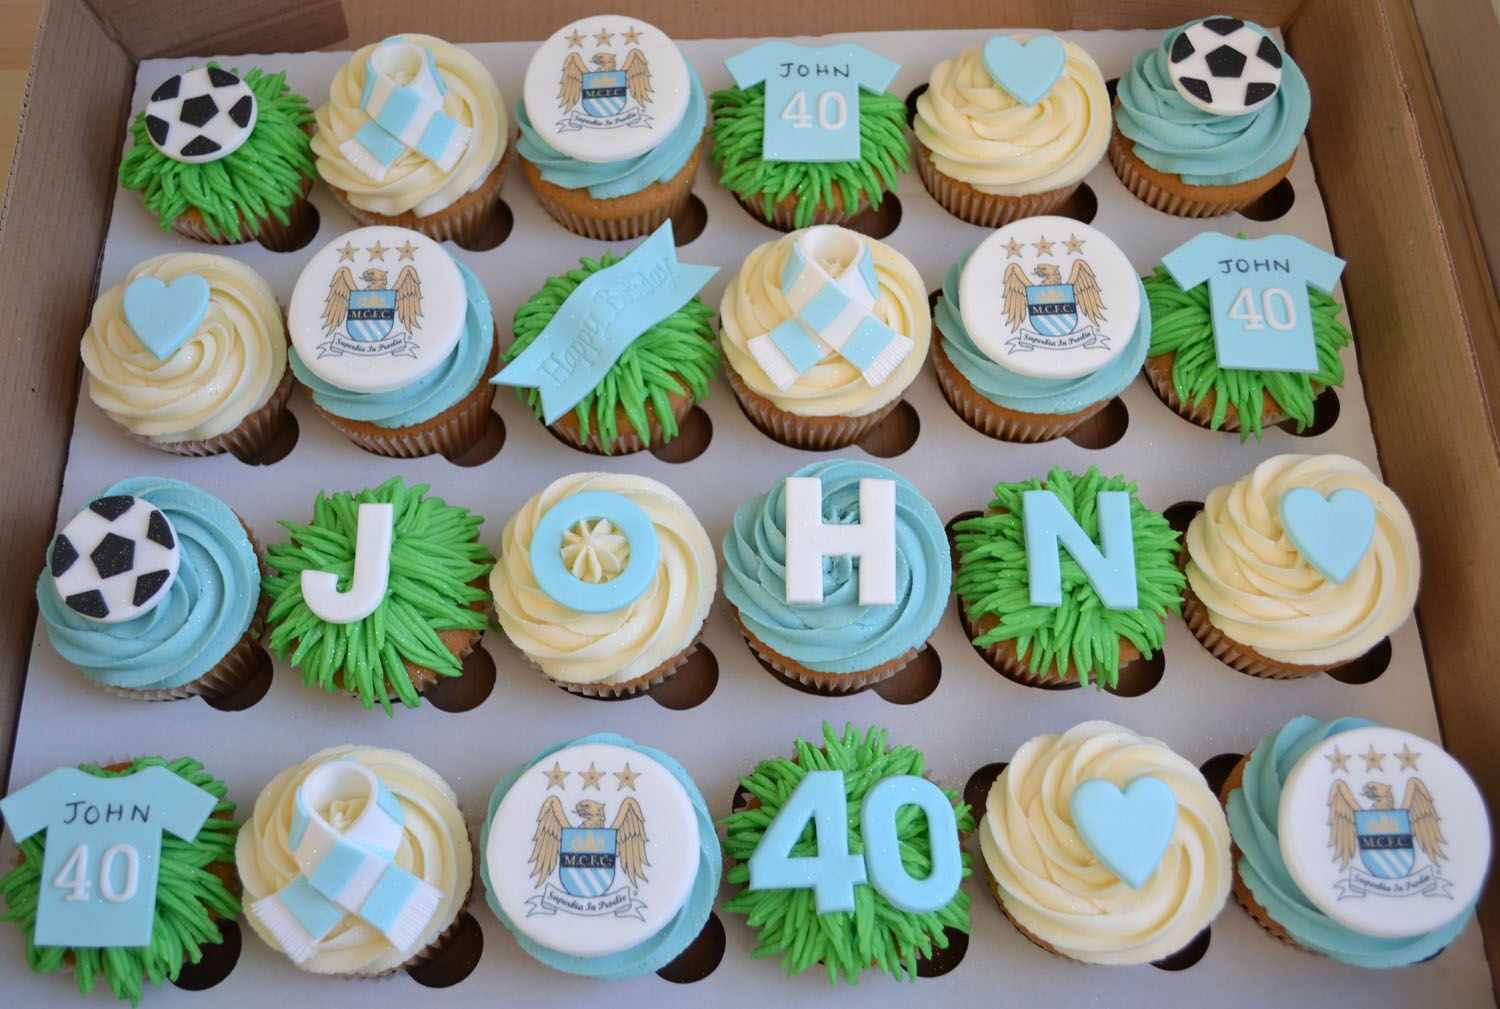 Little Paper Cakes Johns MCFC 40th Birthday Cupcakes Pops